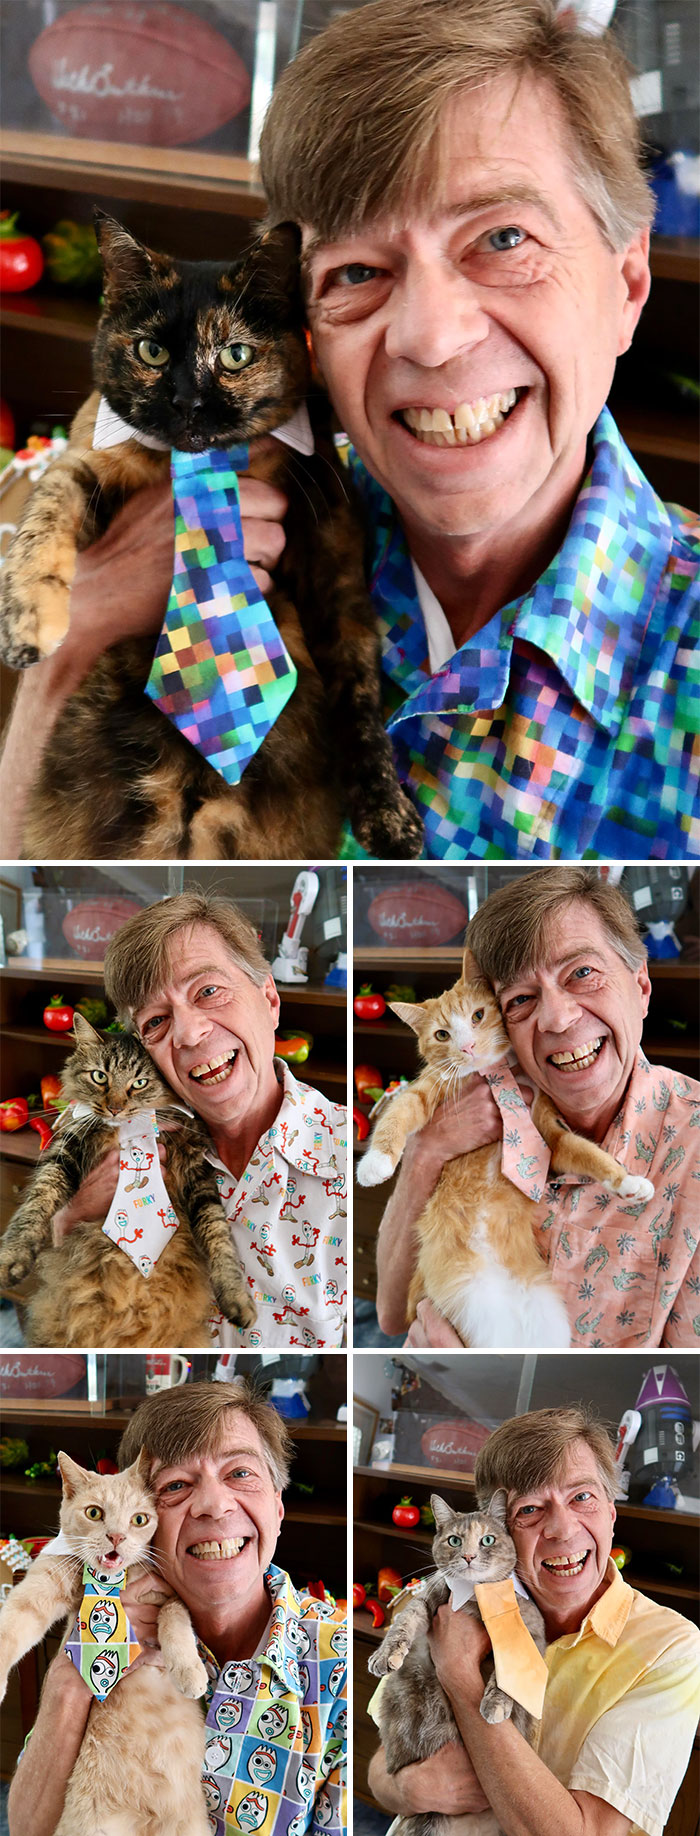 Been Sewing Shirts And Matching Ties For My 5 Cats. It's Been Fun. Hope You Like Them